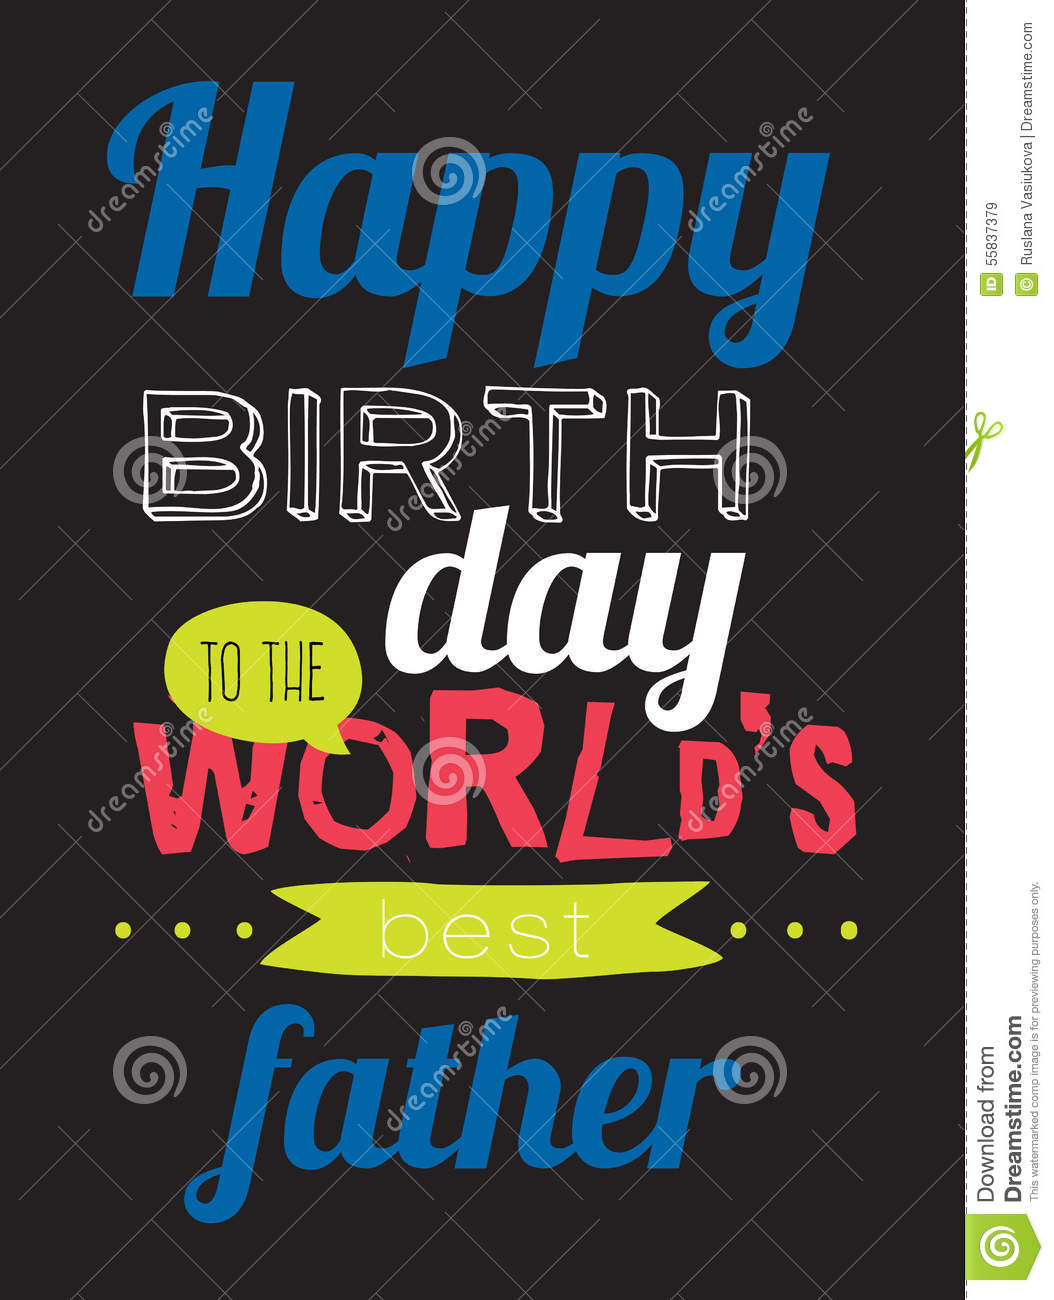 B day poster designs - Birthday Design Father Happy Hipster Poster